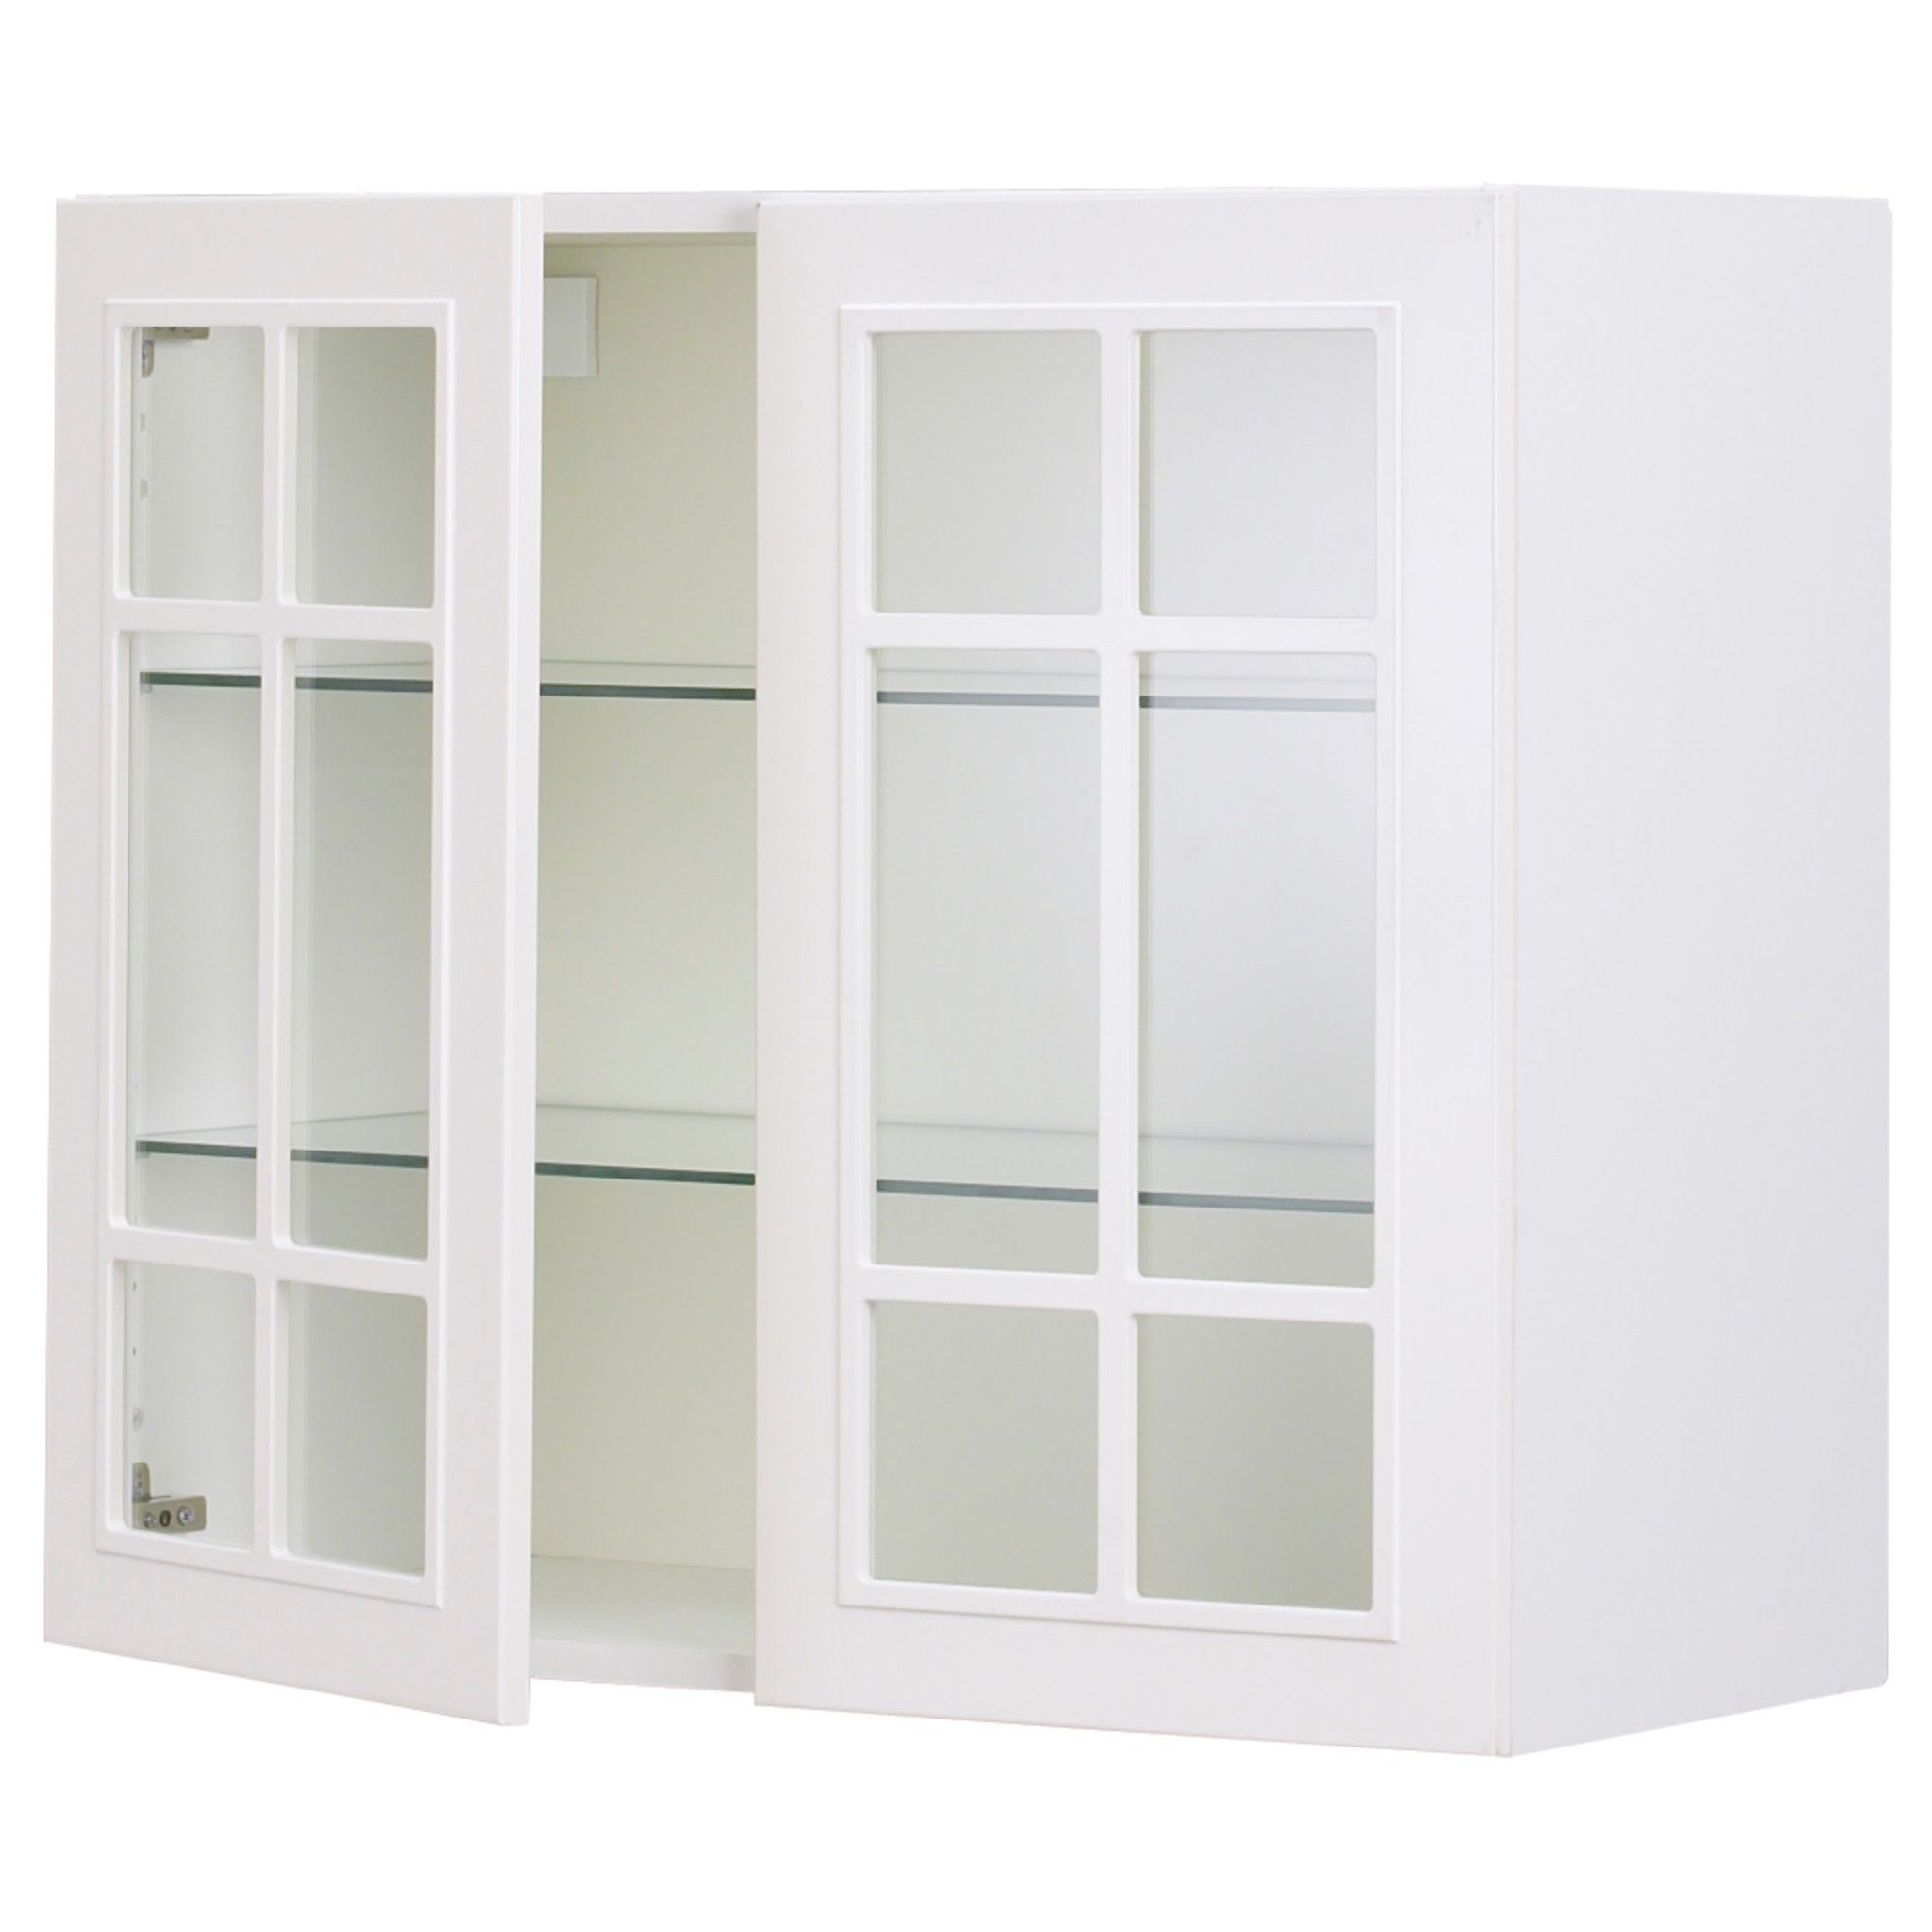 215 30 x 30 glass front wall cabinet akurum wall ForGlass Kitchen Wall Units